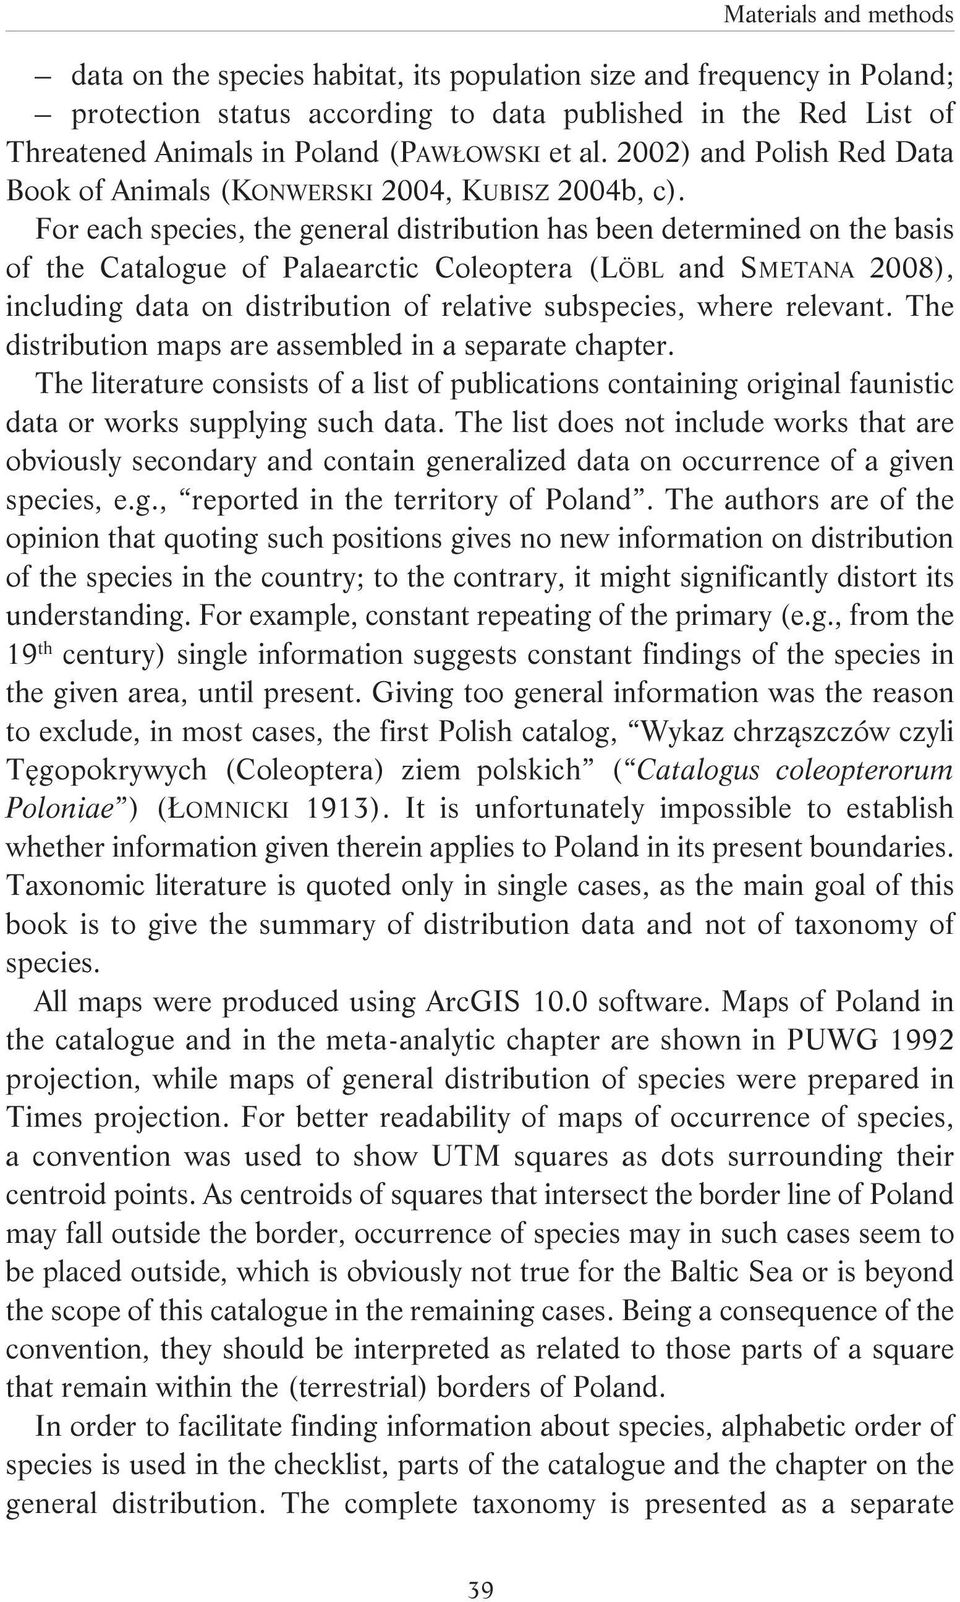 For each species, the general distribution has been determined on the basis of the Catalogue of Palaearctic Coleoptera (LÖBL and SMETANA 2008), including data on distribution of relative subspecies,